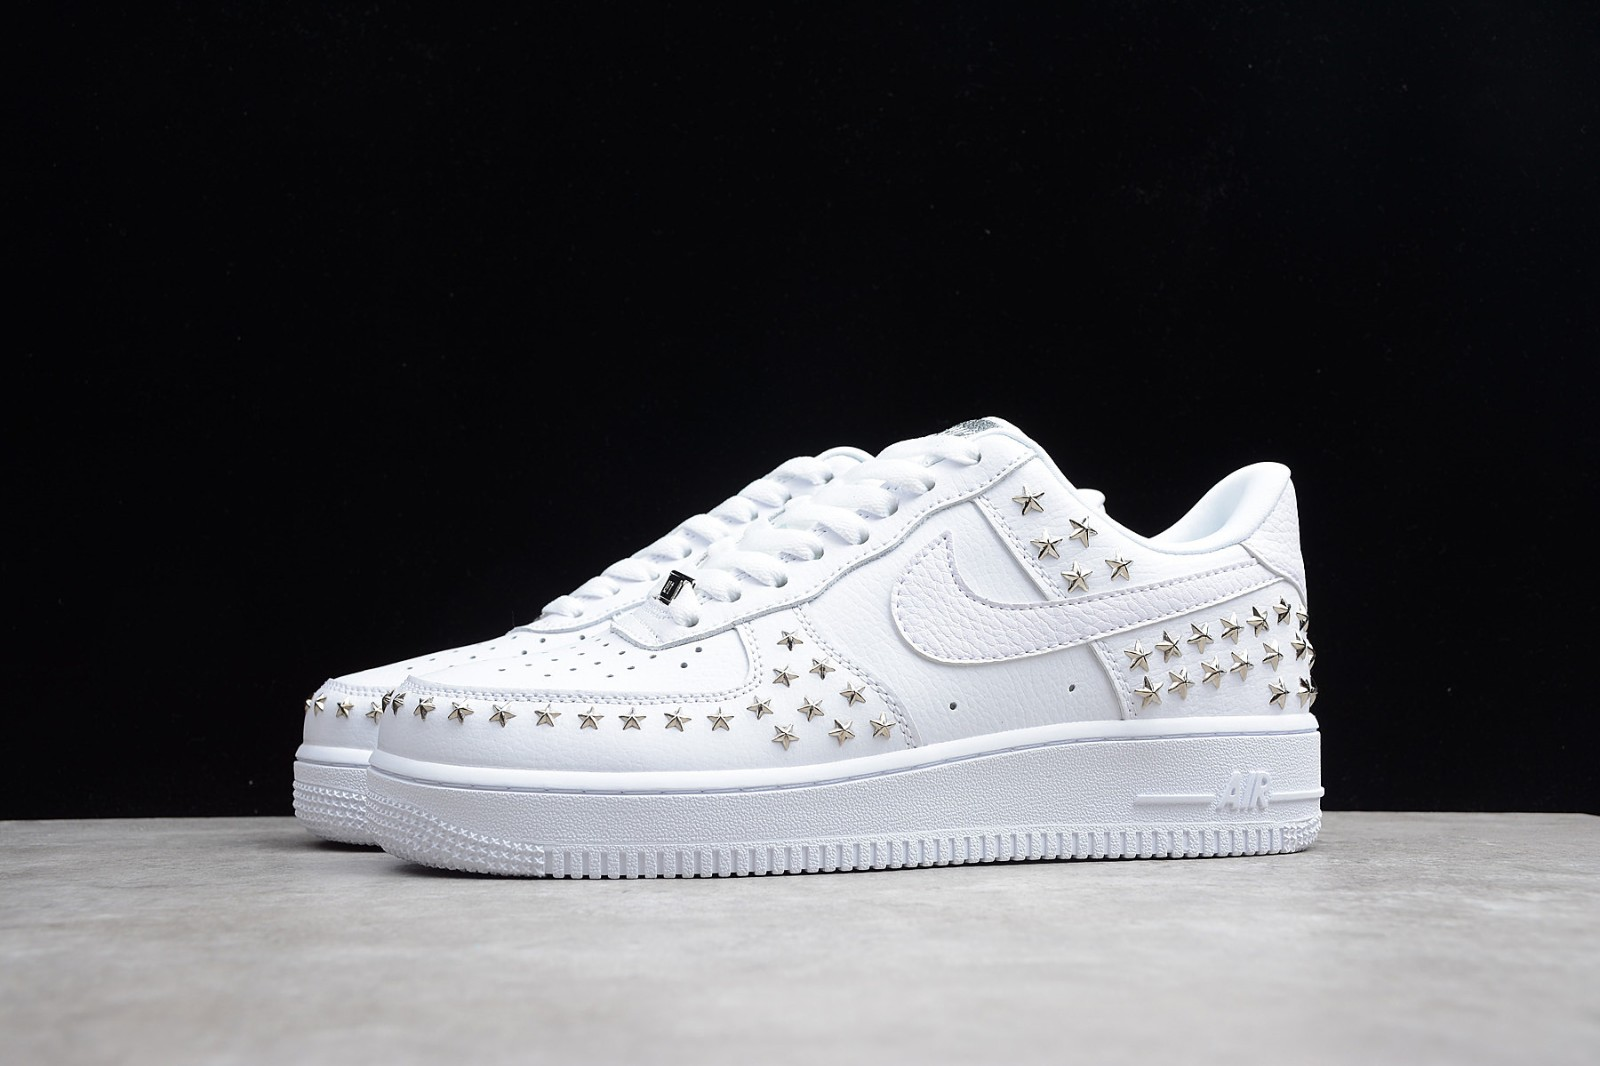 Xx Force White Pack 07 Stars 100 Nike Ar0639 Air 1 pUVSzM